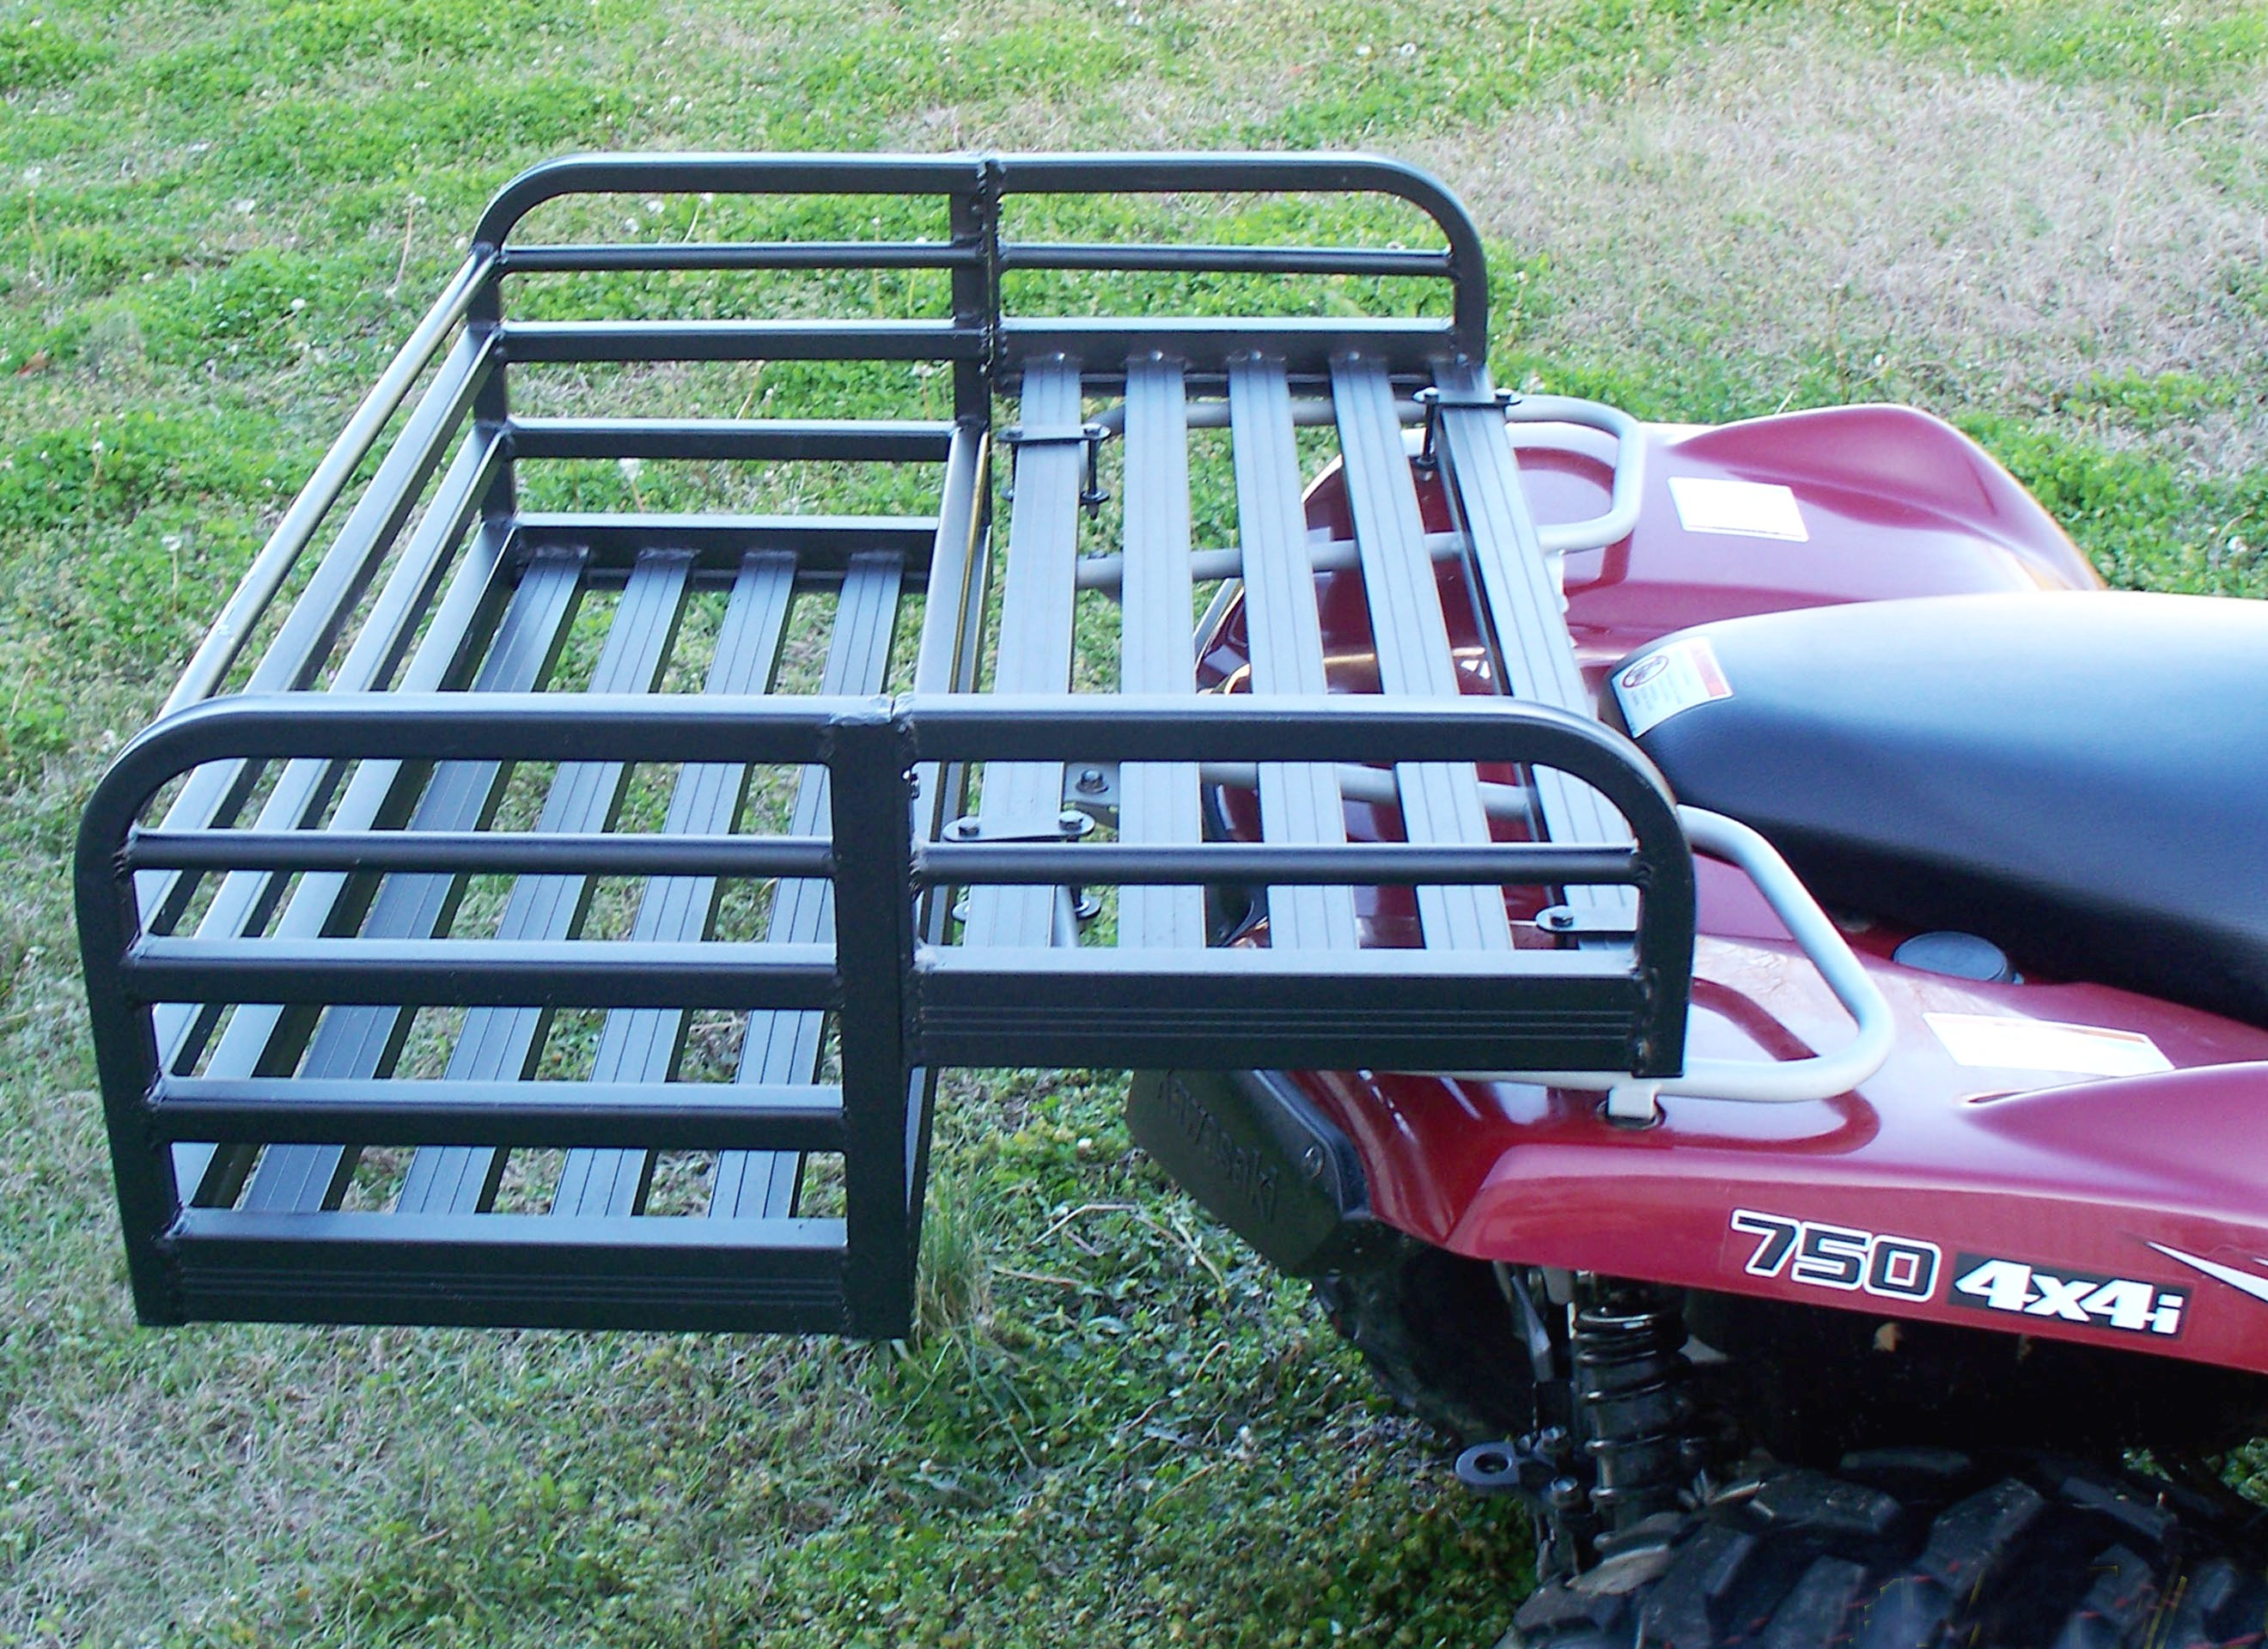 hitch store motorcycle carriers the lift rack carrier atv and